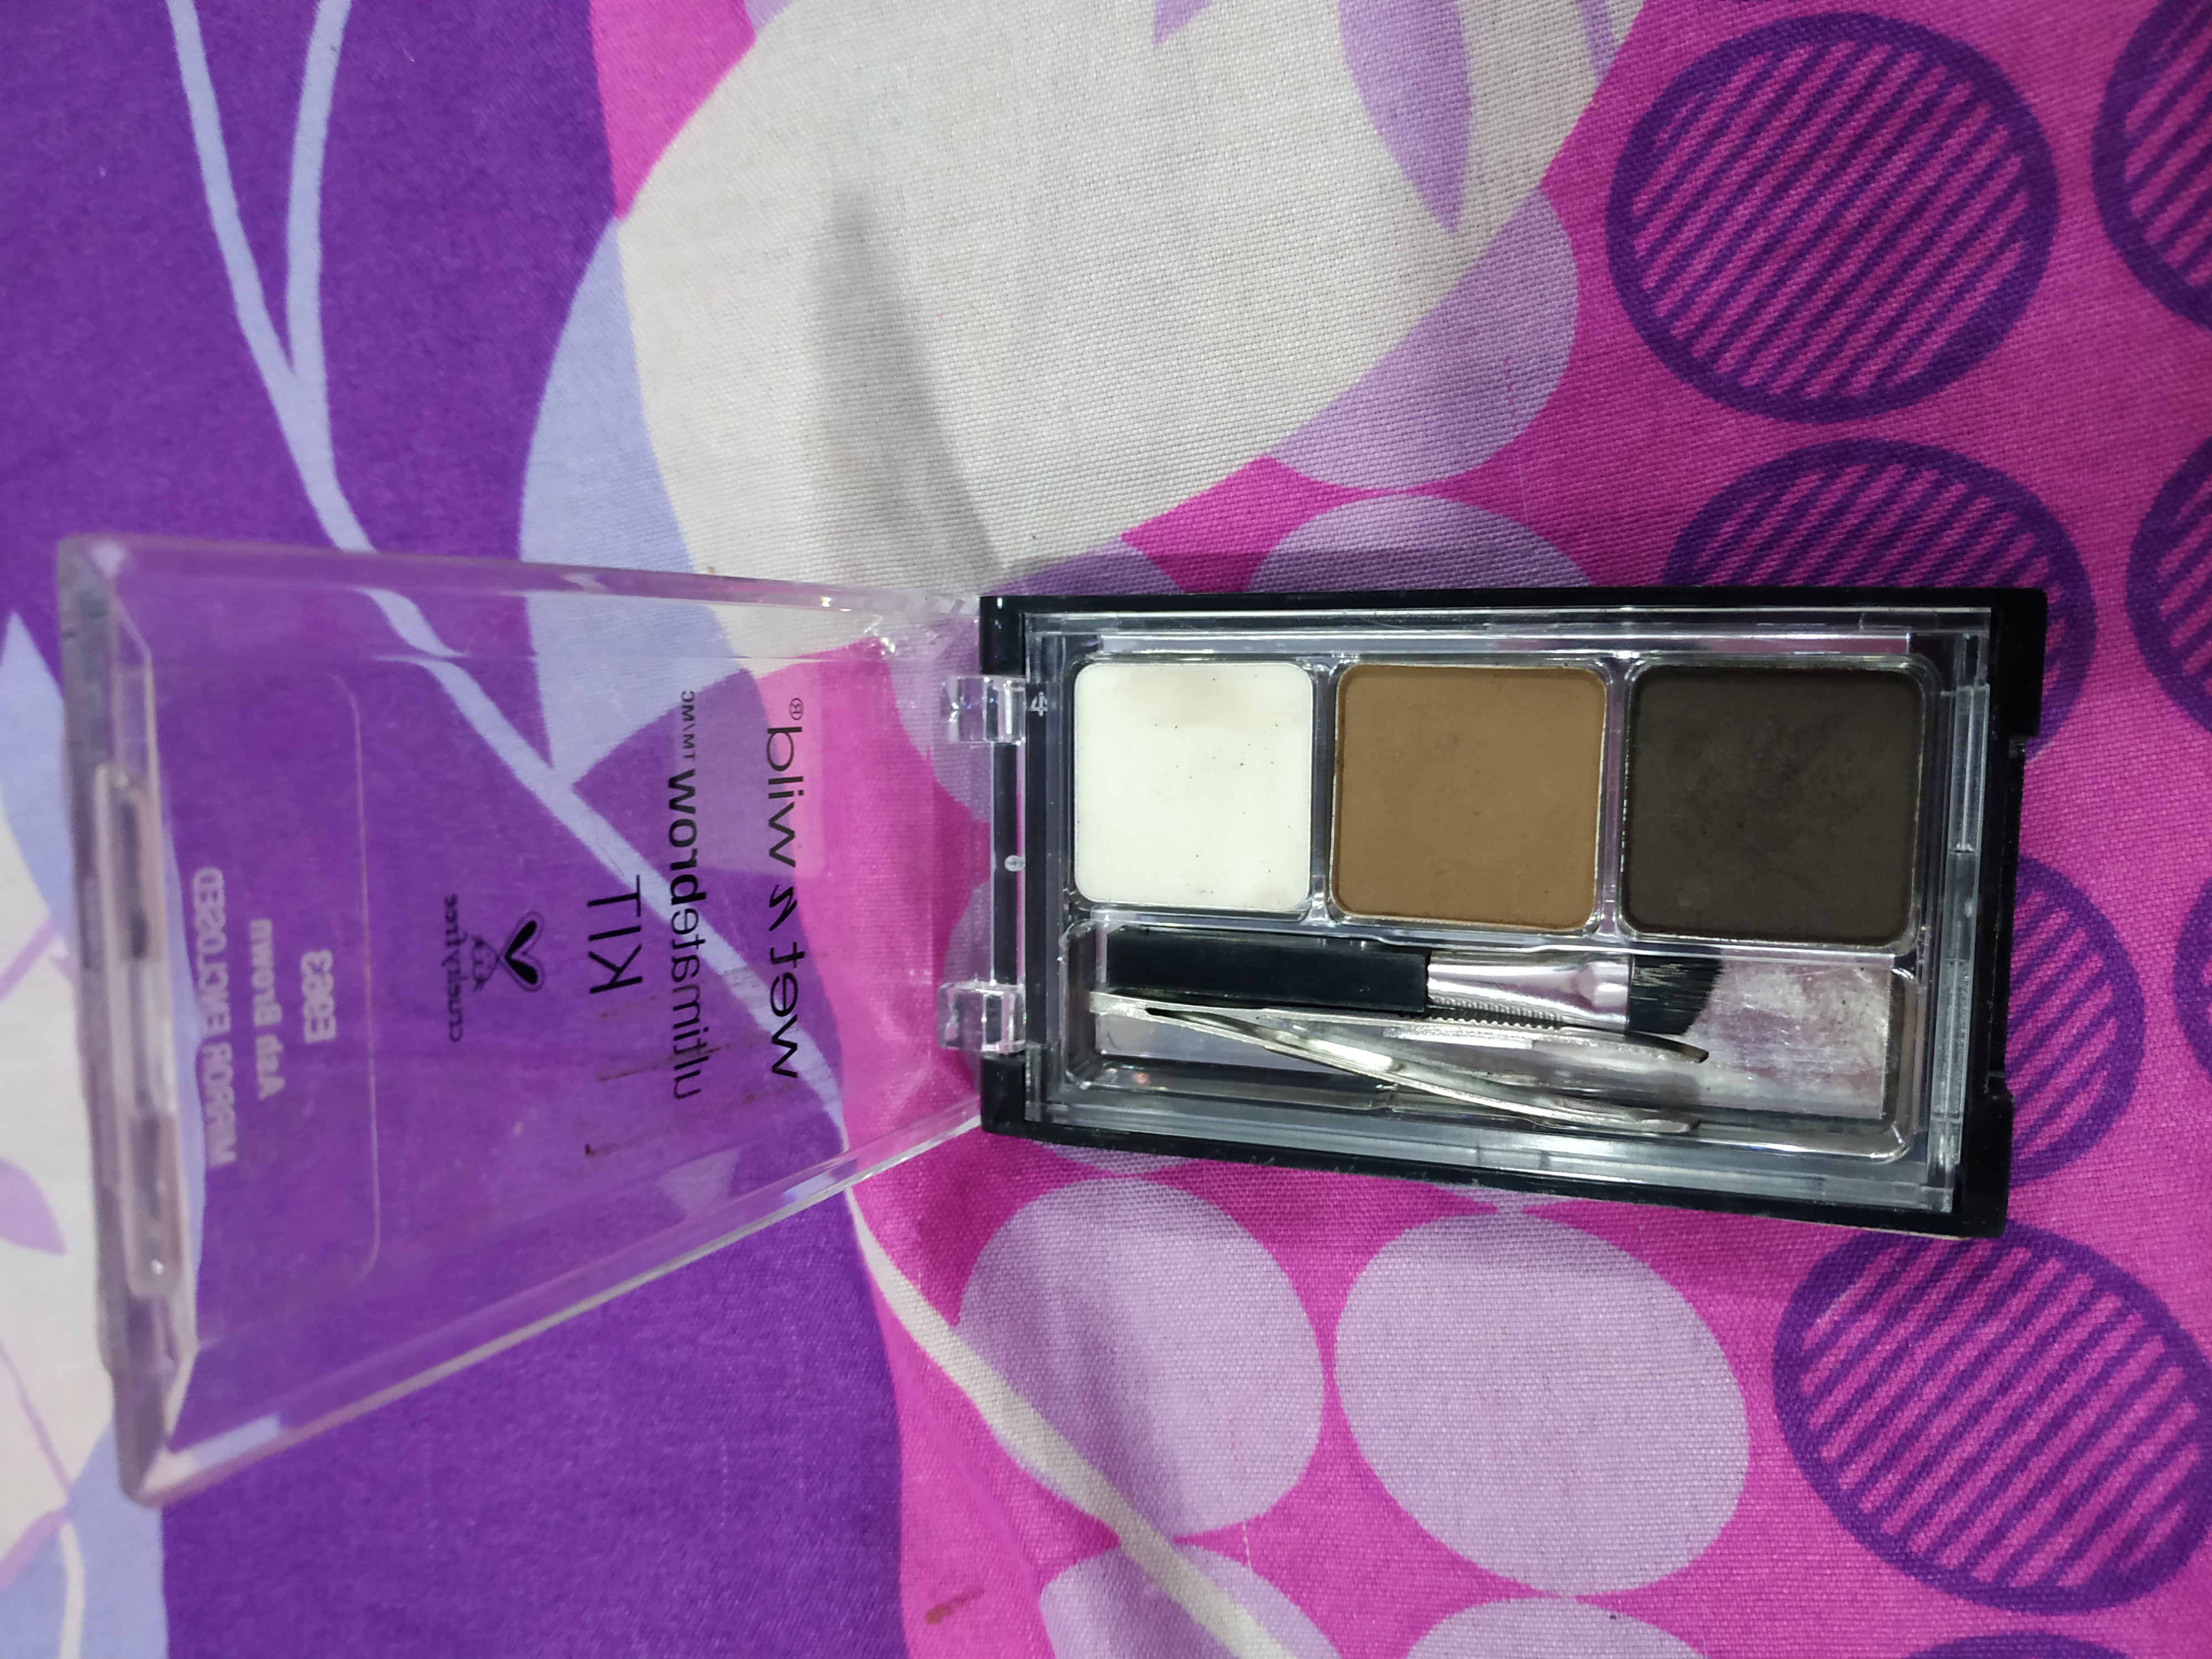 Wet N Wild Ultimate Brow Kit-Perfect brow kit..!-By nilofer